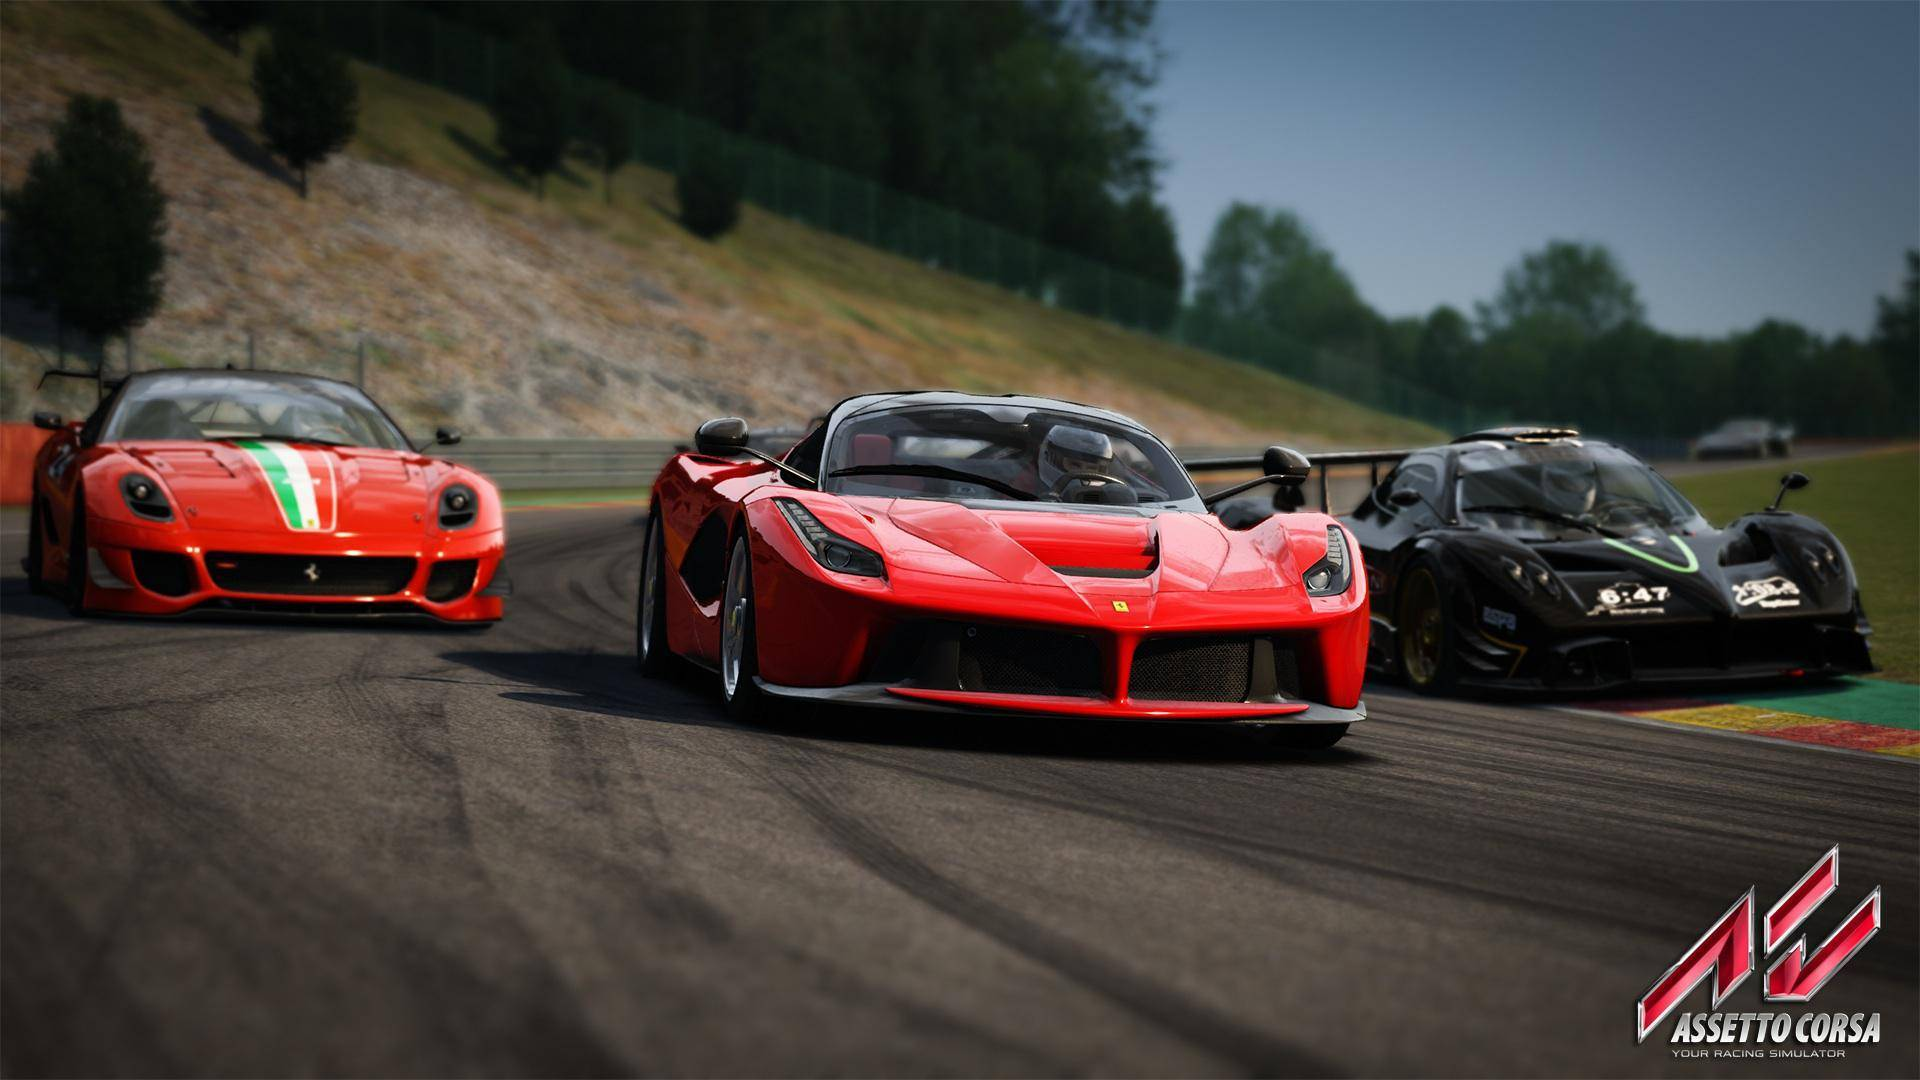 buy assetto corsa xbox one compare prices. Black Bedroom Furniture Sets. Home Design Ideas